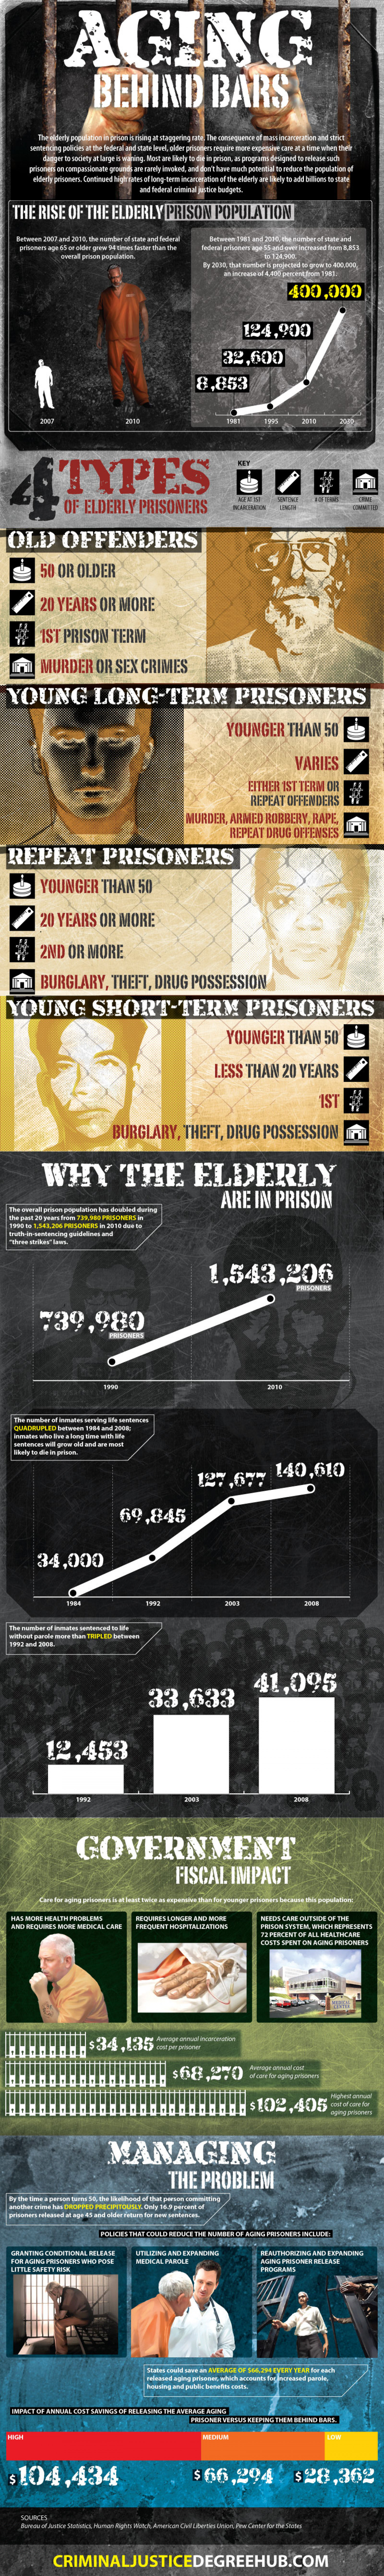 Aging Behind Bars Infographic